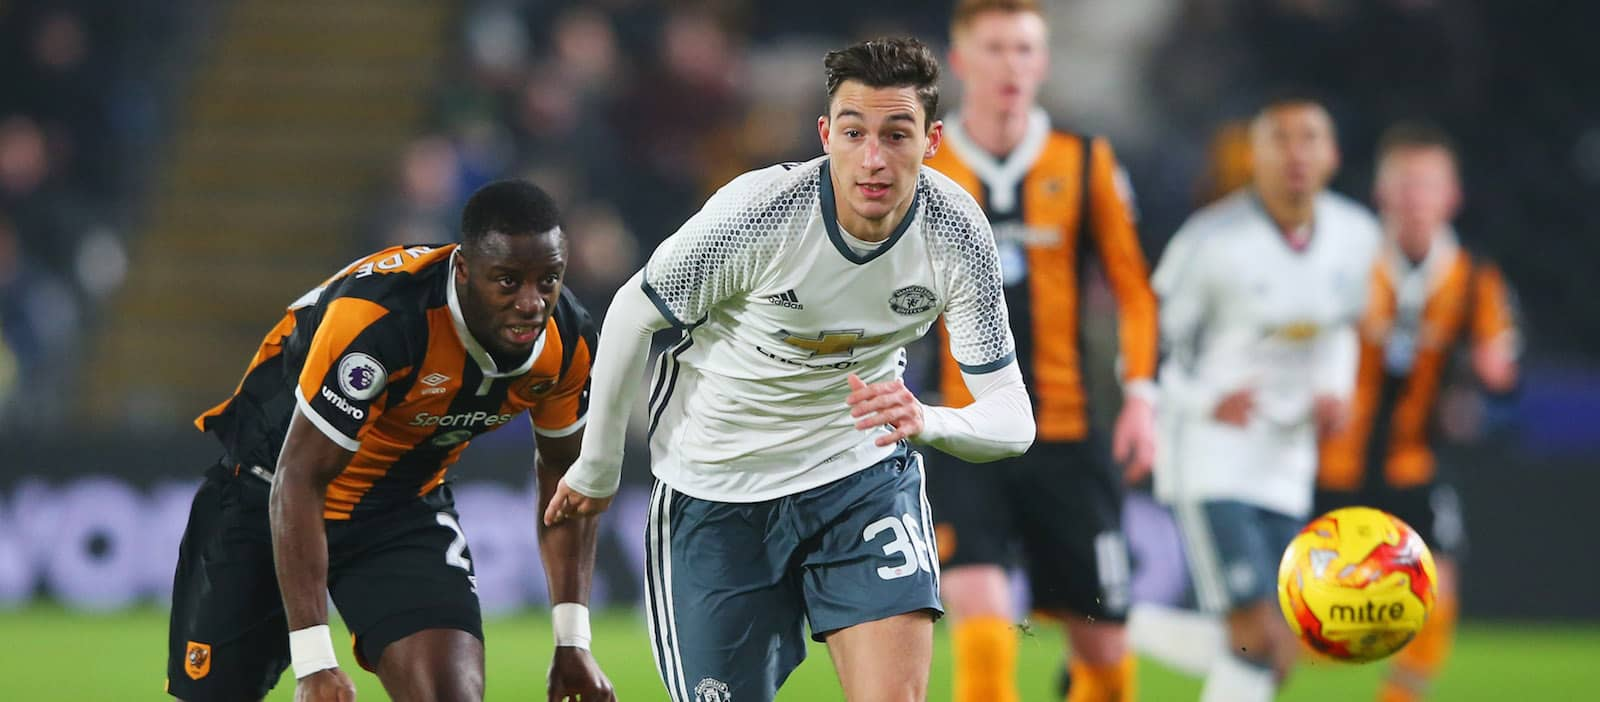 Roma set to rival Inter Milan in pursuit of Matteo Darmian this summer – report